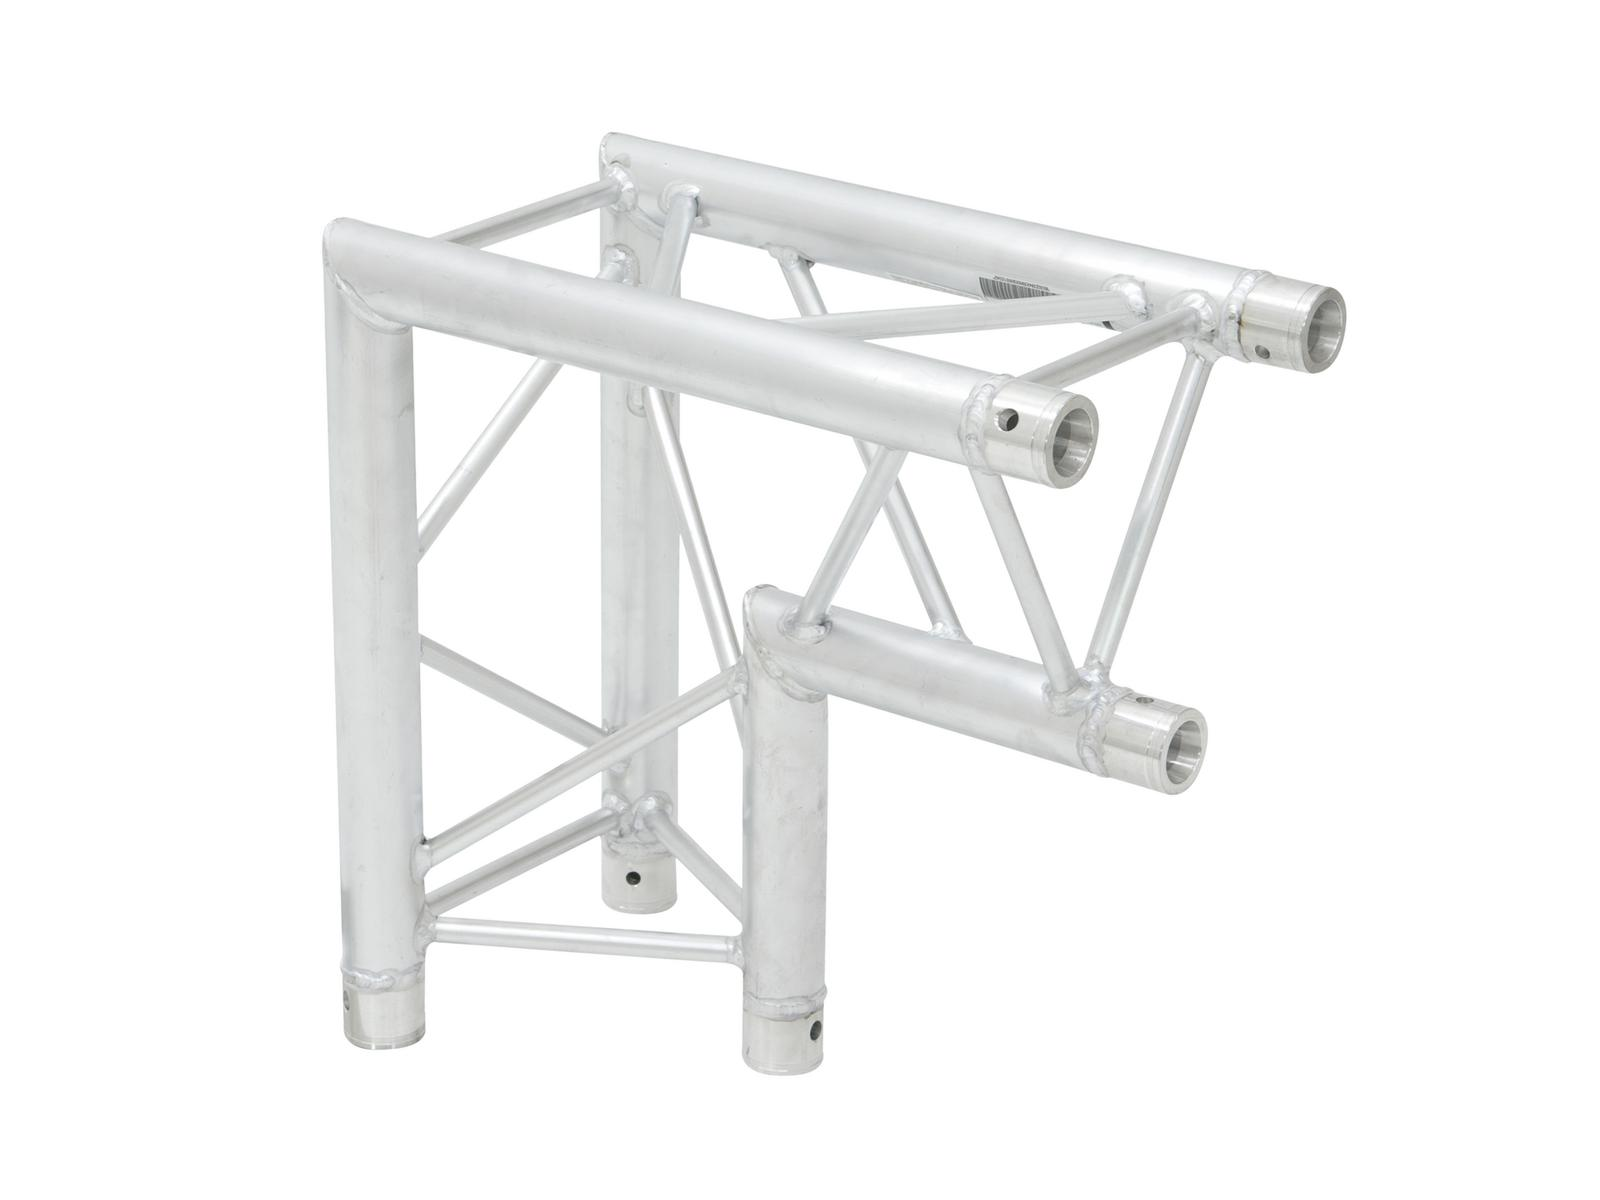 ALUTRUSS TRILOCK E-GL33 C-25 2